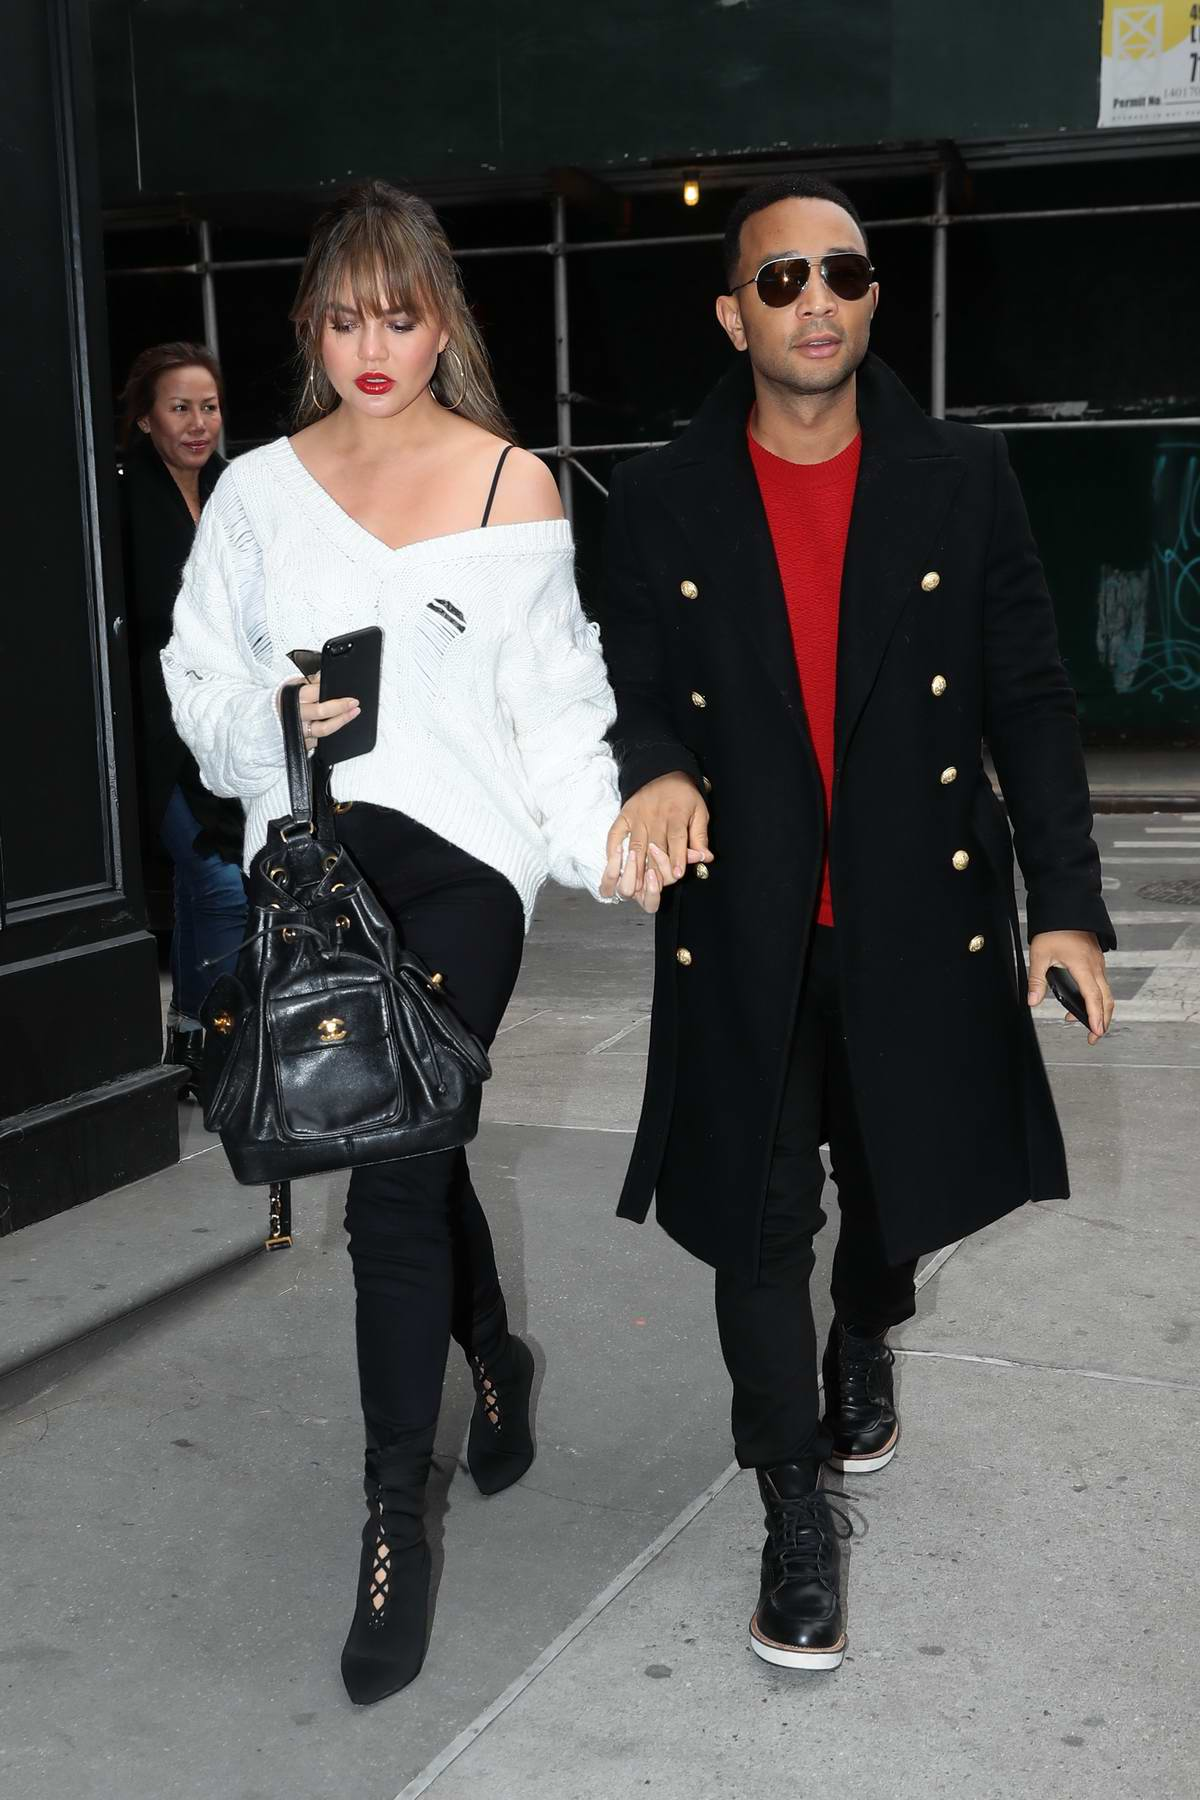 Chrissy Teigen sporting bangs while out with husband John Legend in New York City